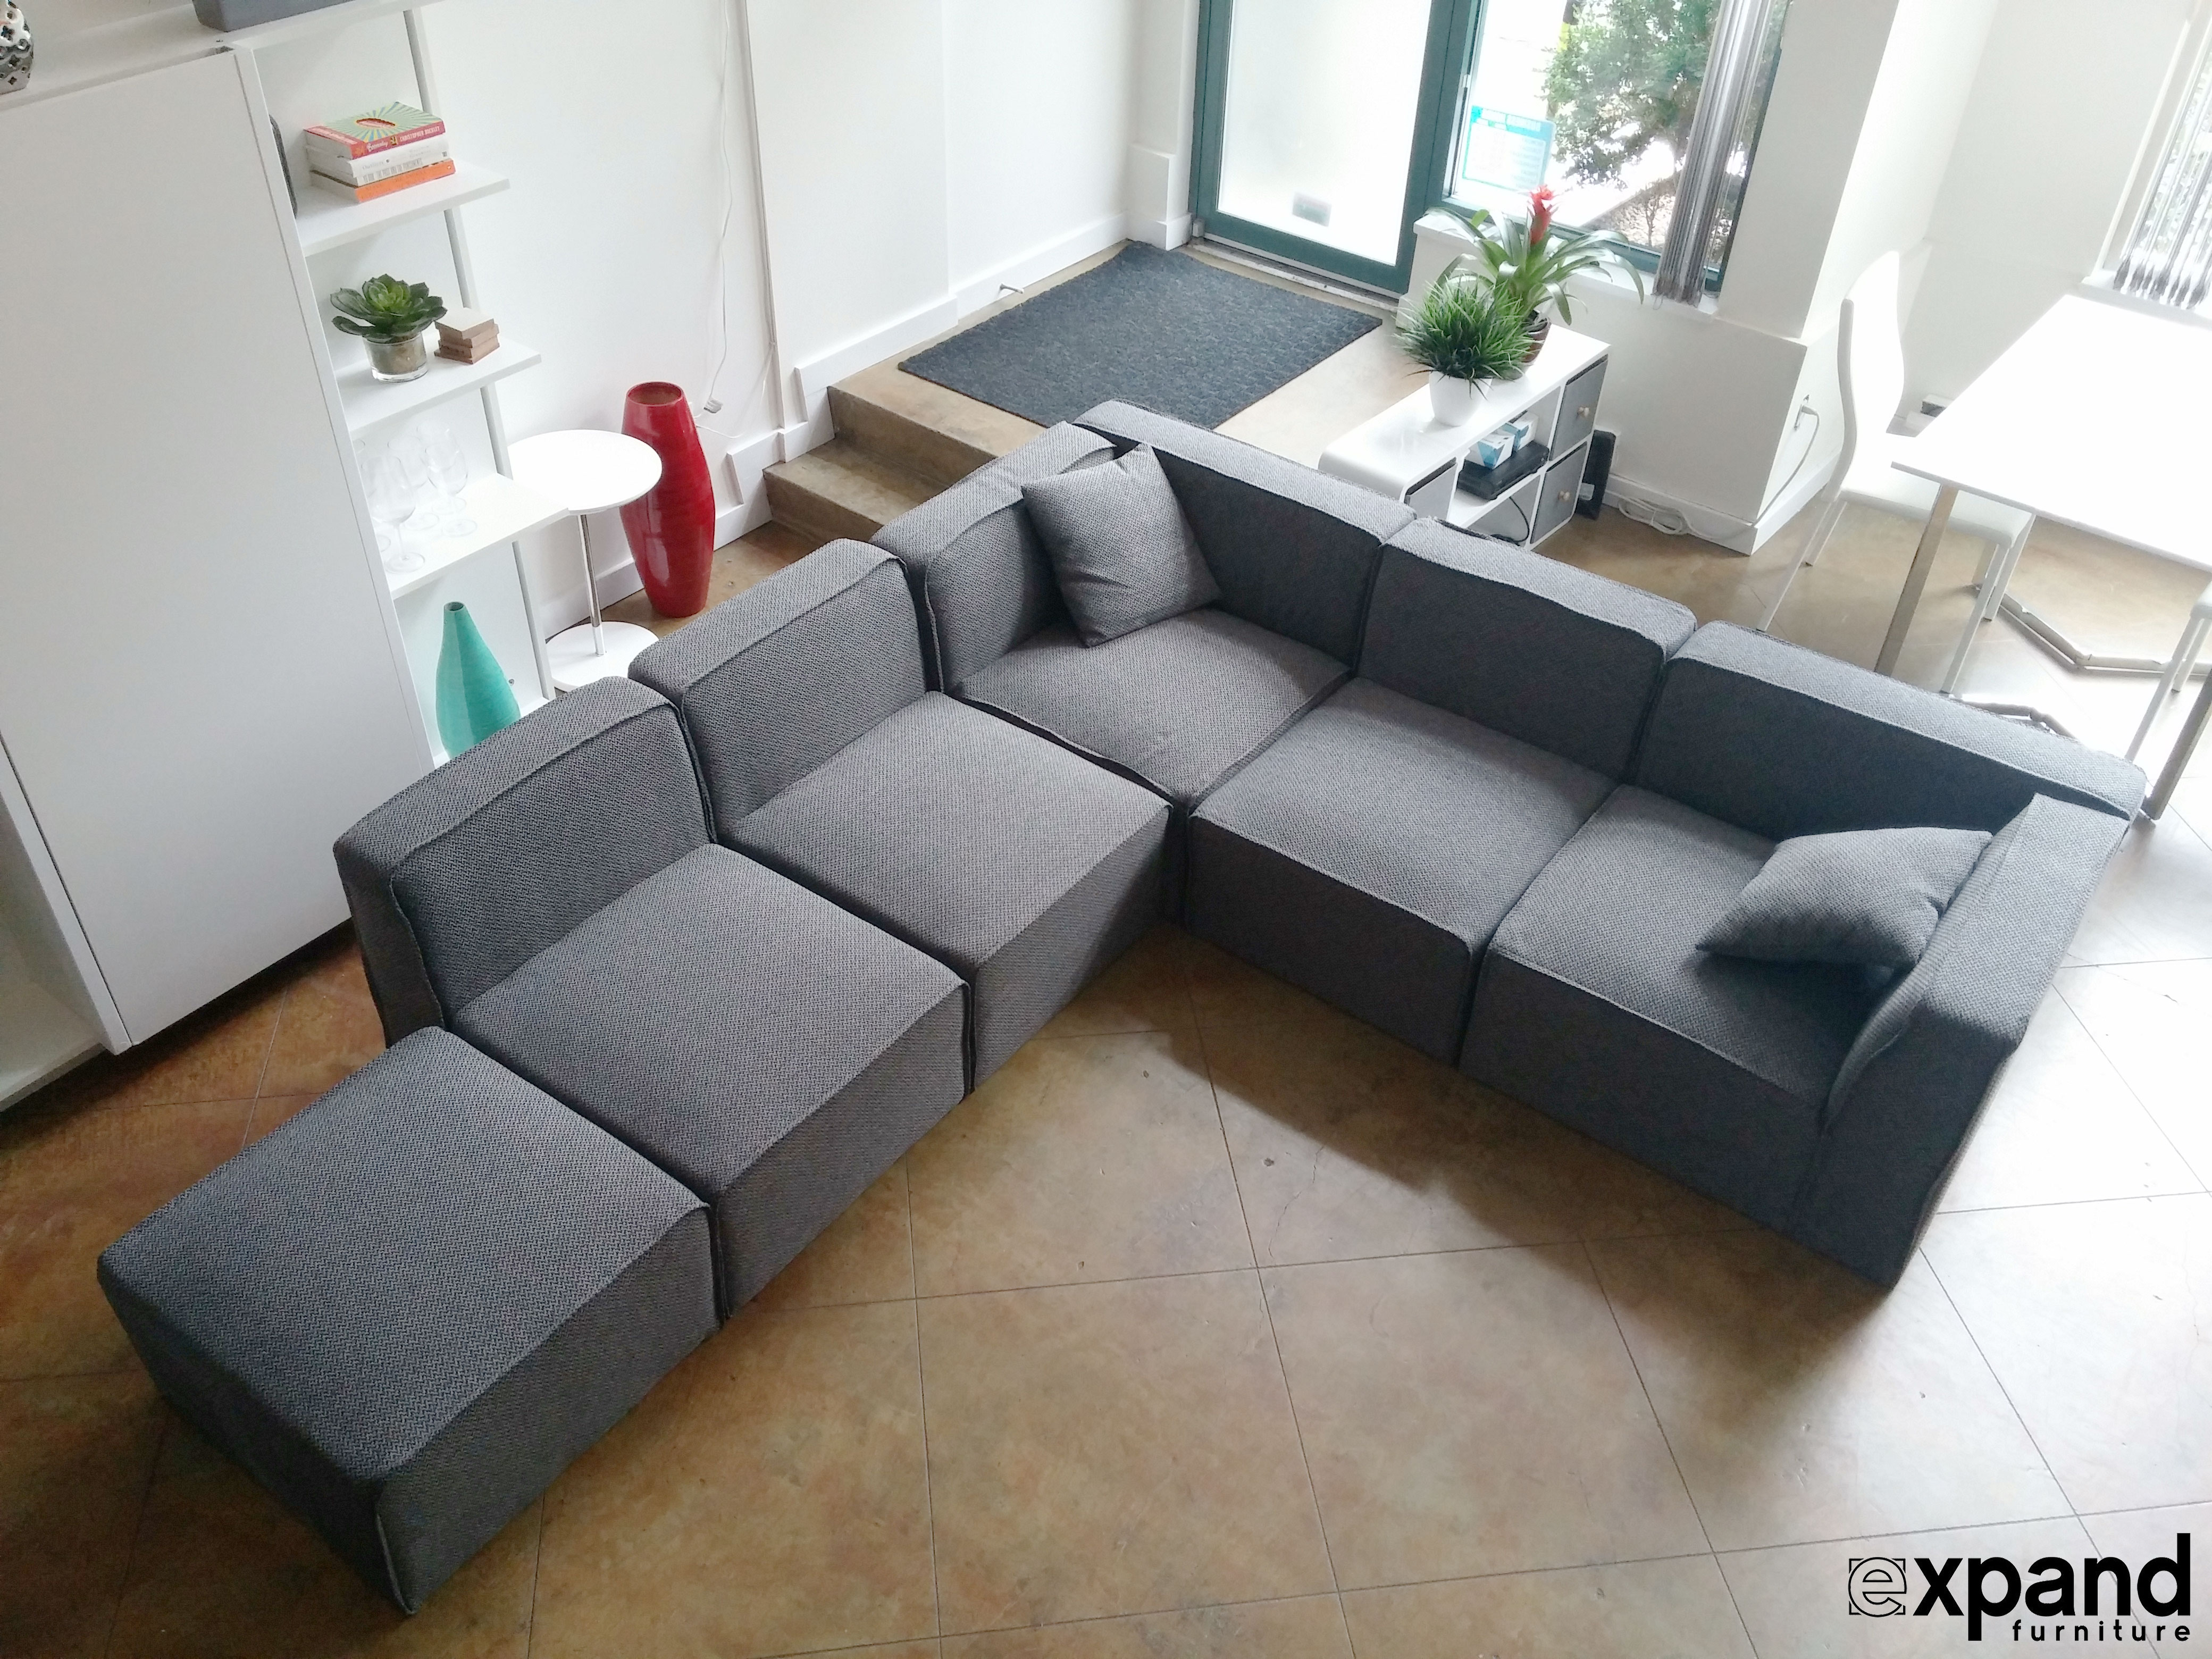 Soft Cube Modern Modular Sofa Set Expand Furniture Folding